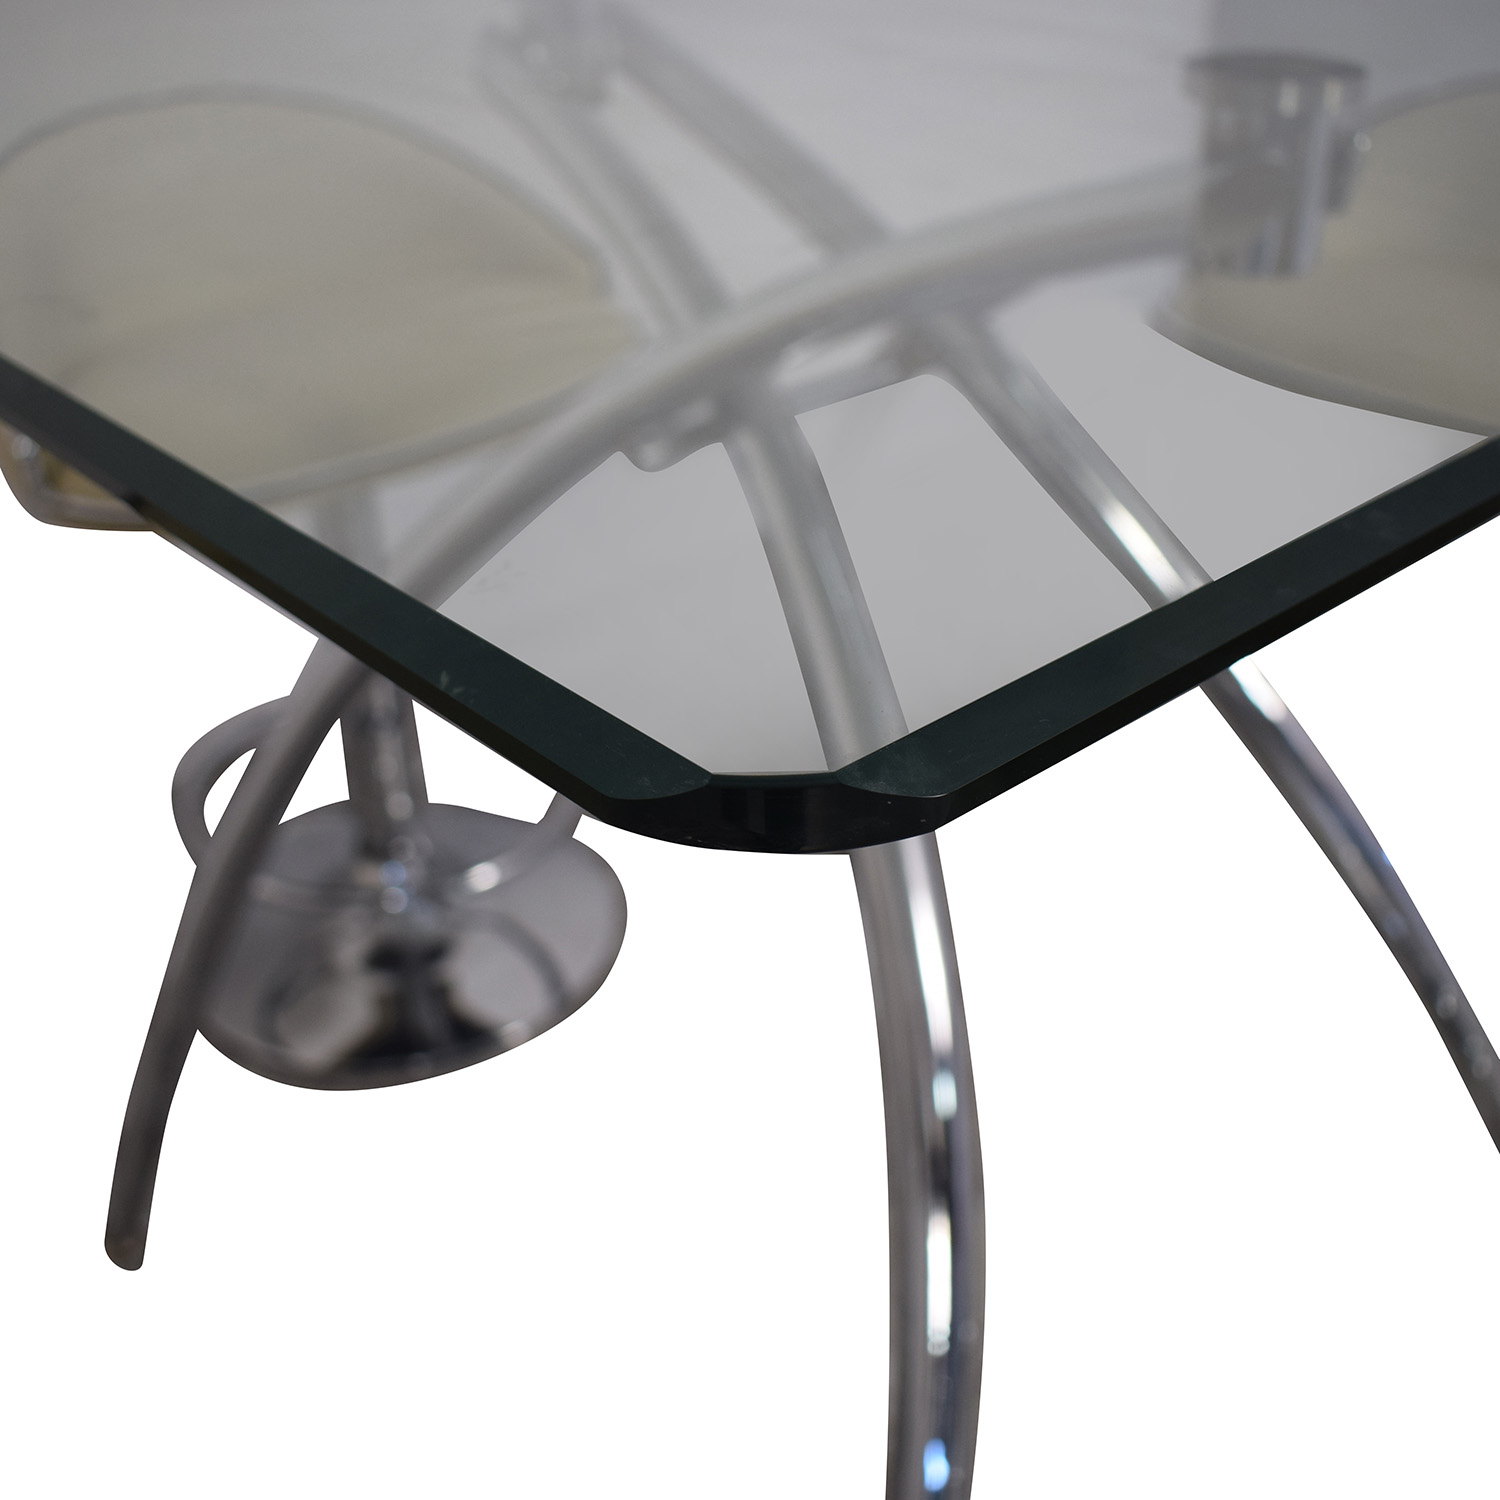 Chintaly Imports Chintaly Imports Adjustable Bar Stools and Glass Table Set for sale